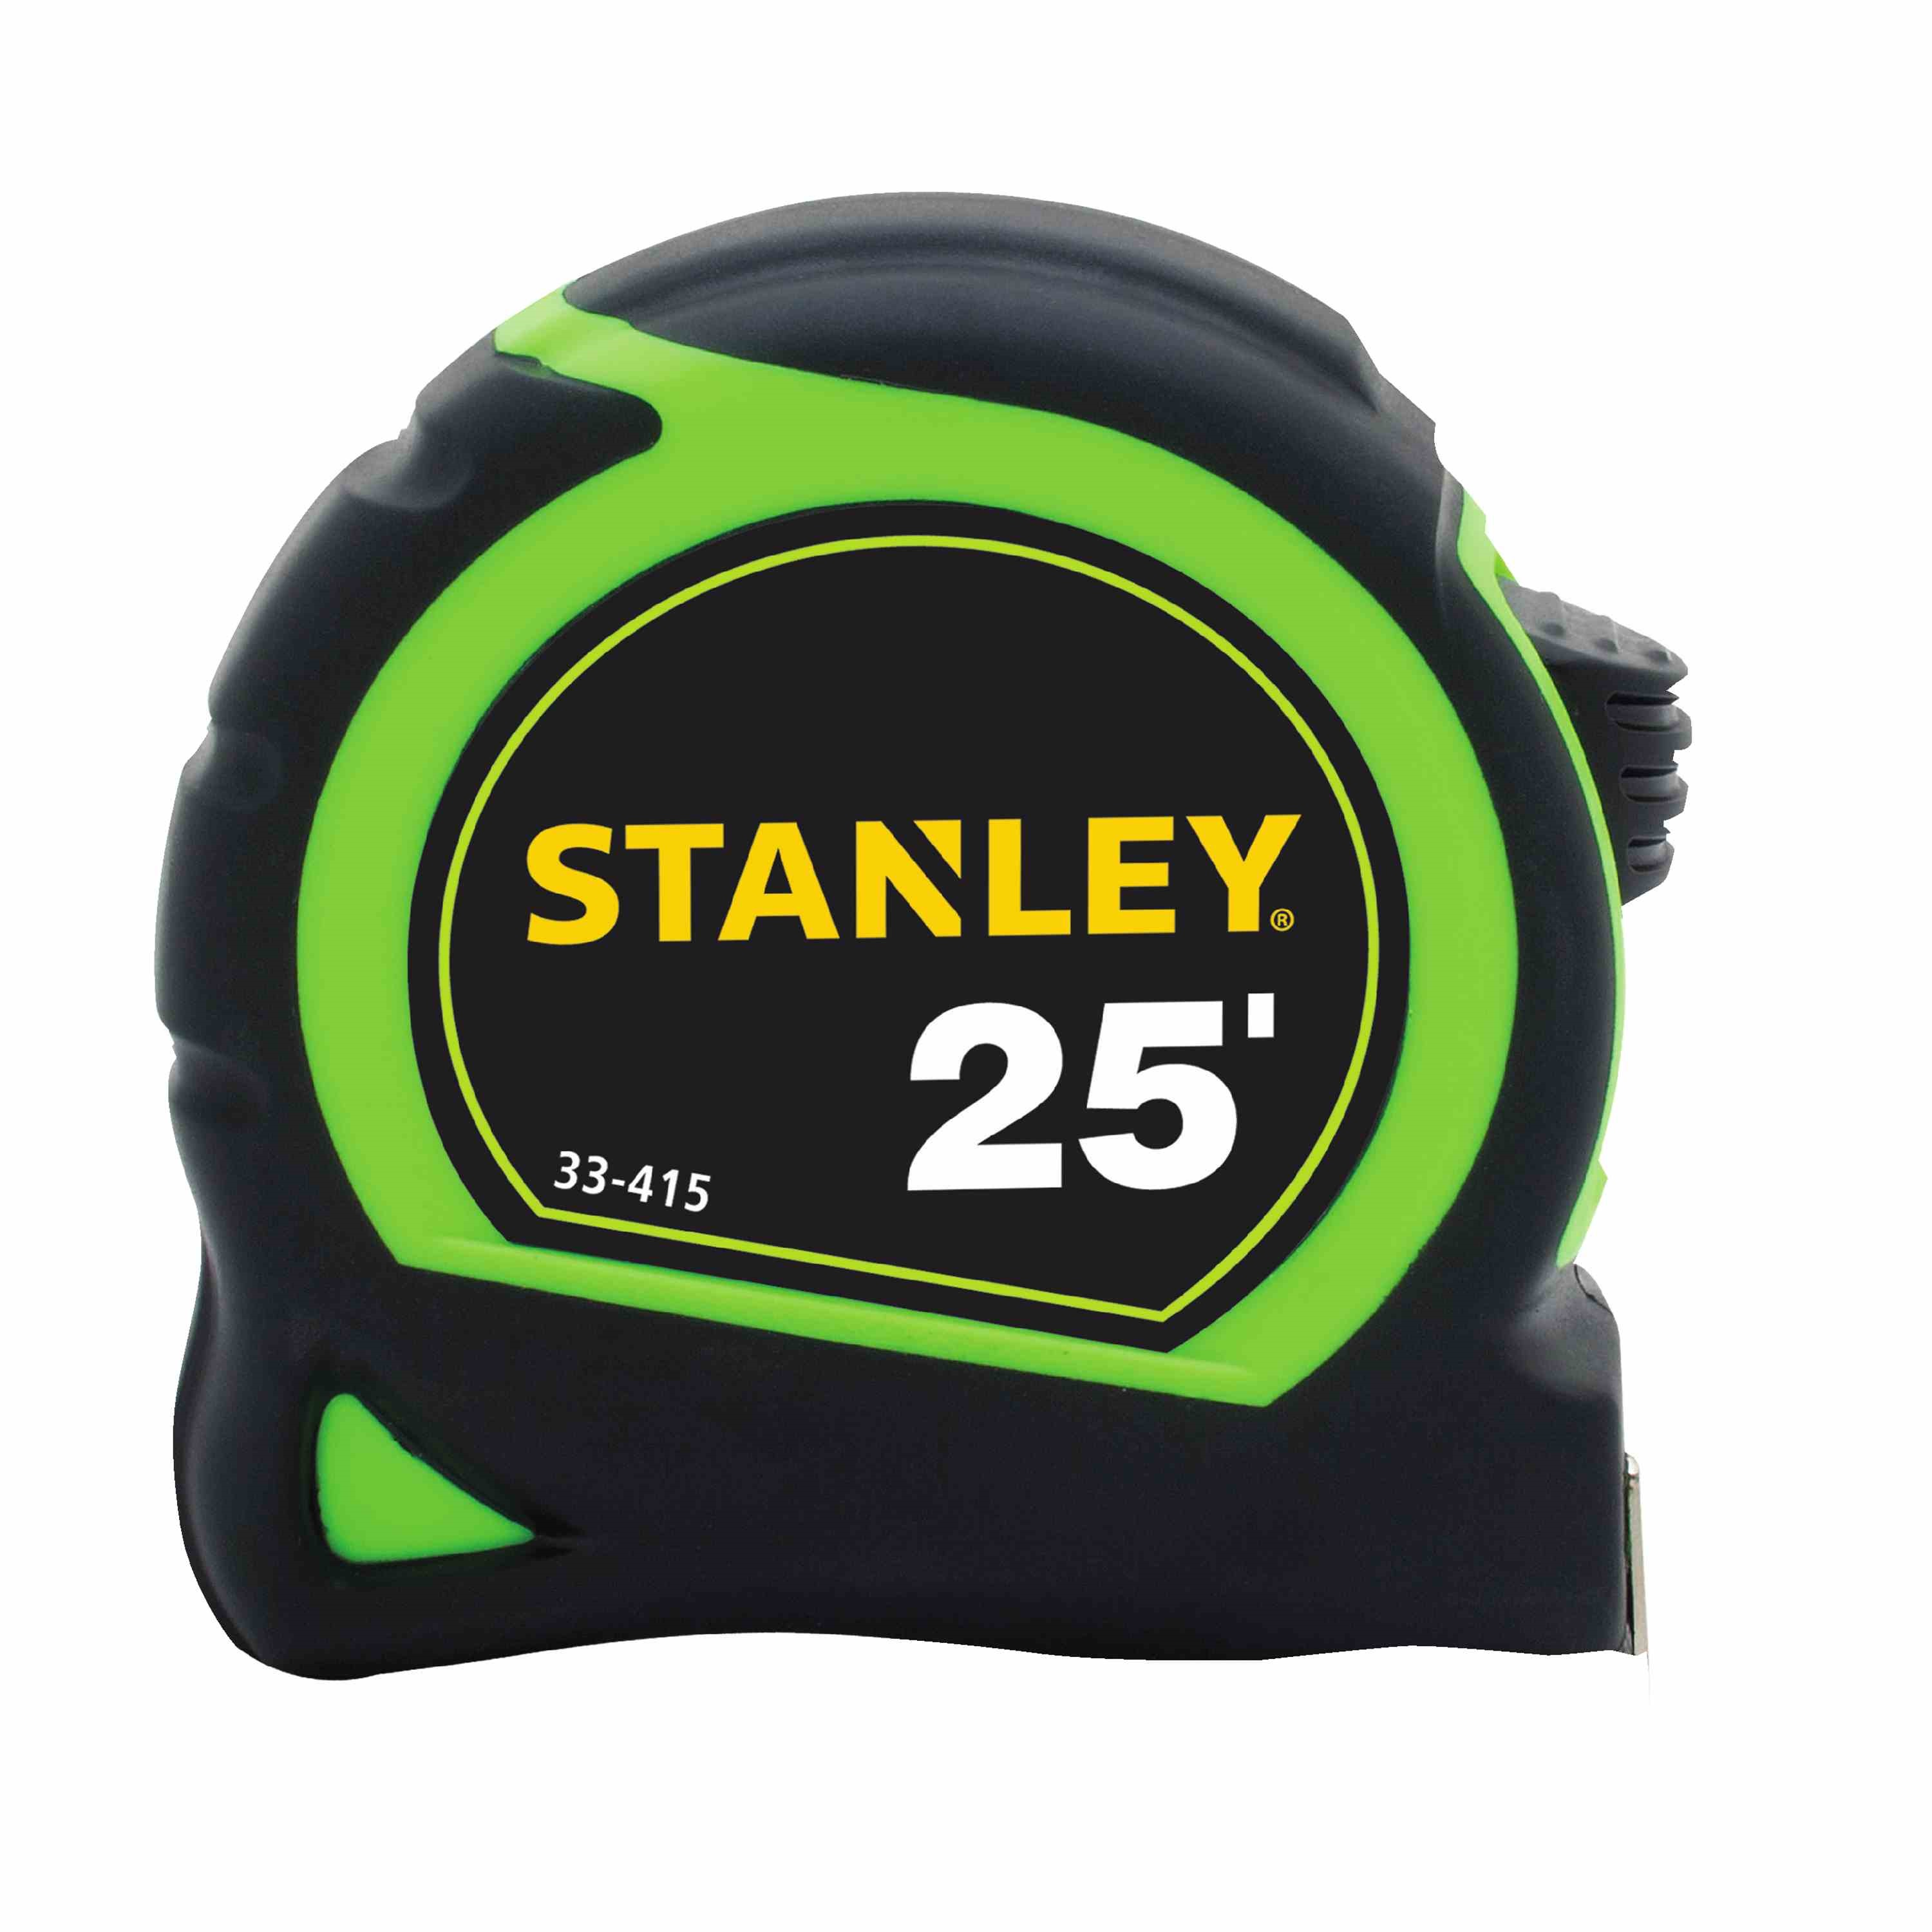 Stanley Tools - 25 ft HighVisibility Tape Measure - 33-415